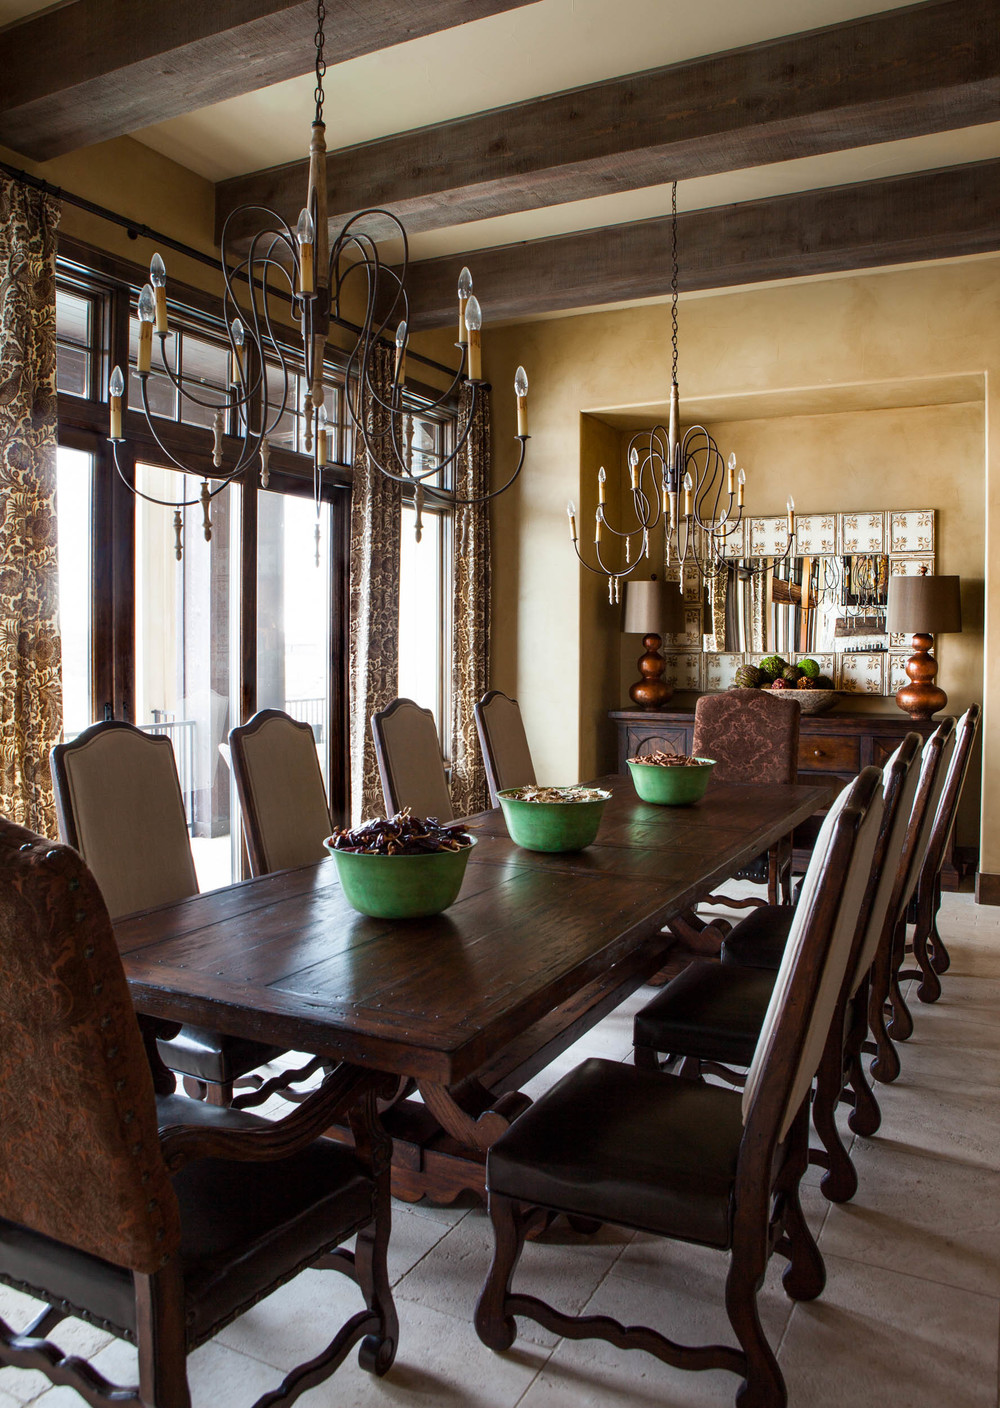 austin-house-dining-room-interior-design.jpg